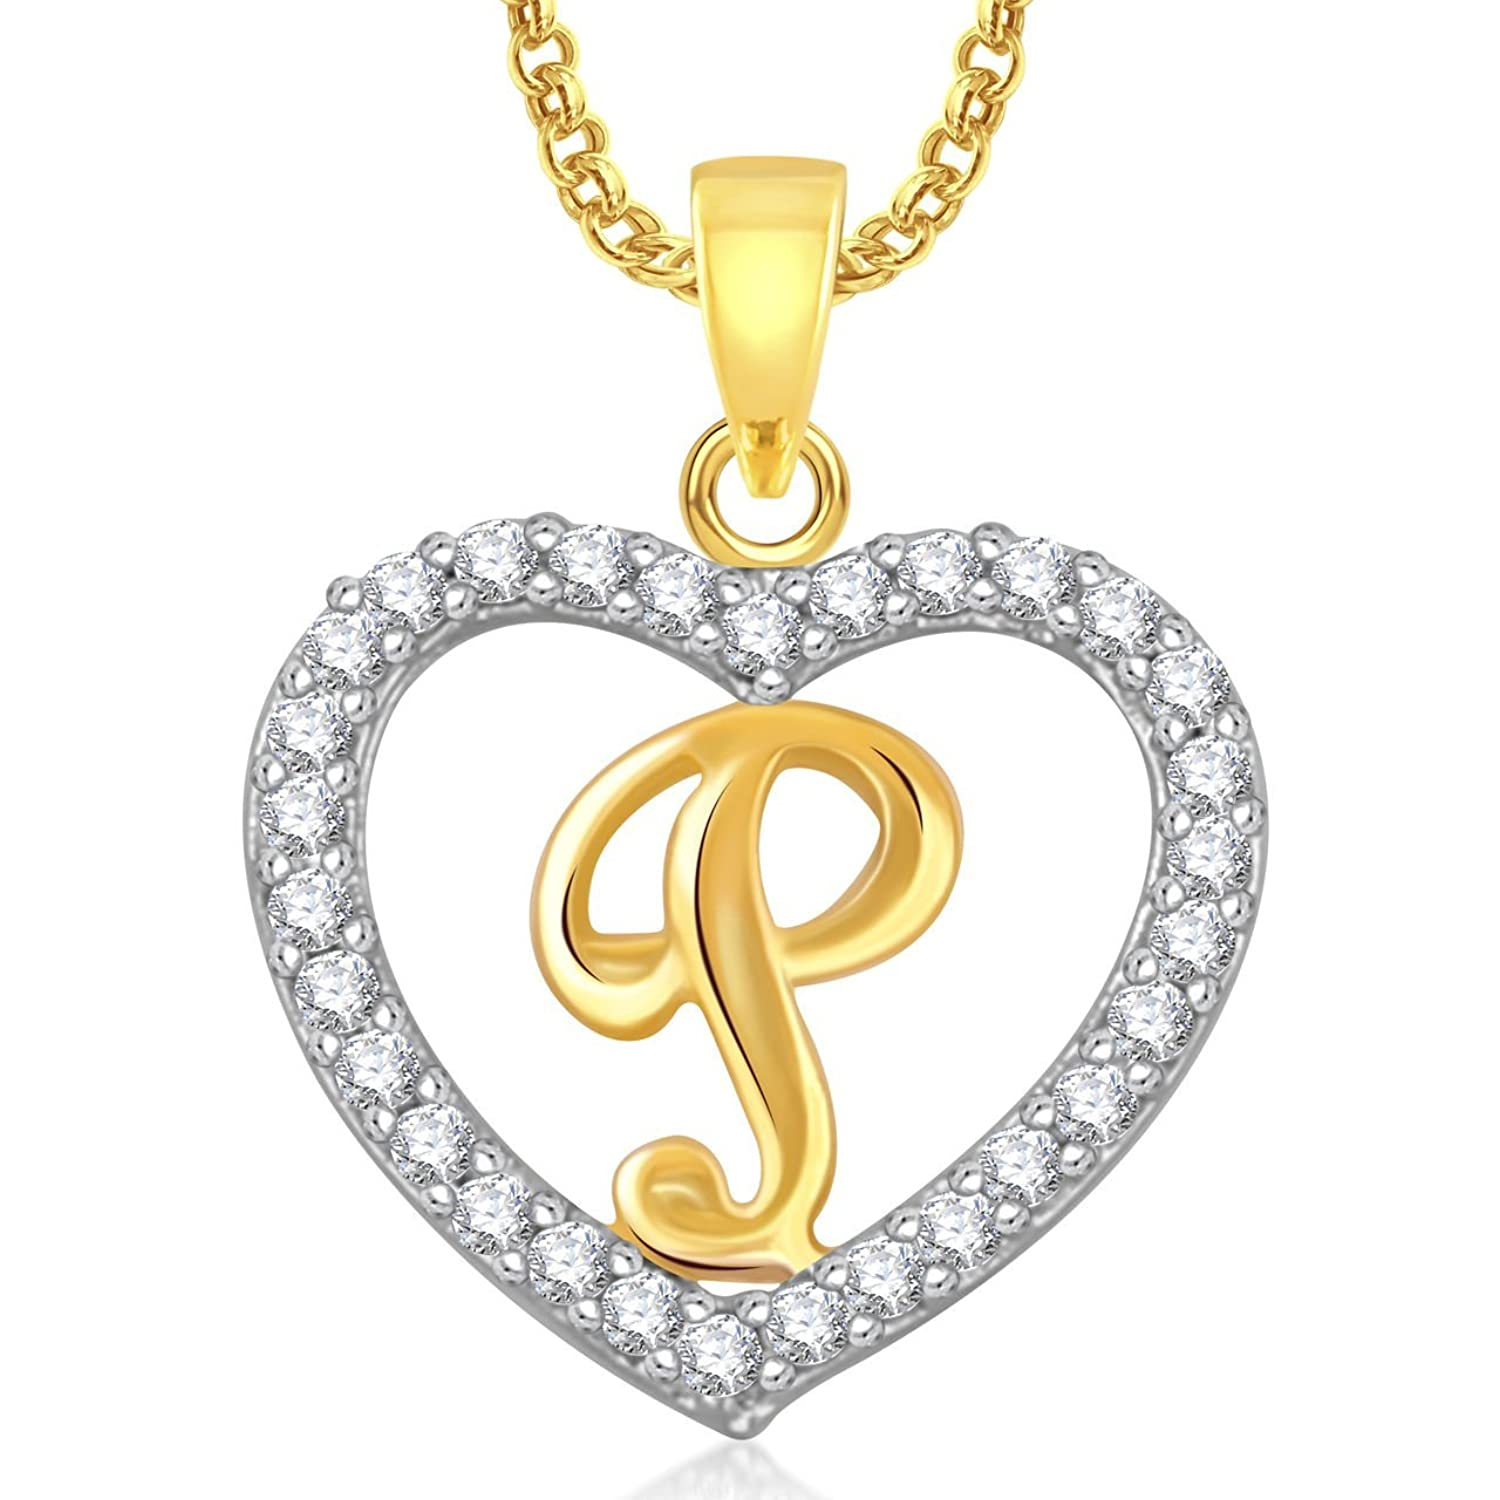 Buy Valentine Gifts Amaal Heart U0027Pu0027 Alphabet Pendant For Girls U0026 Women With  Chain PS0408 Online At Low Prices In India | Amazon Jewellery Store    Amazon.in  P & L Form